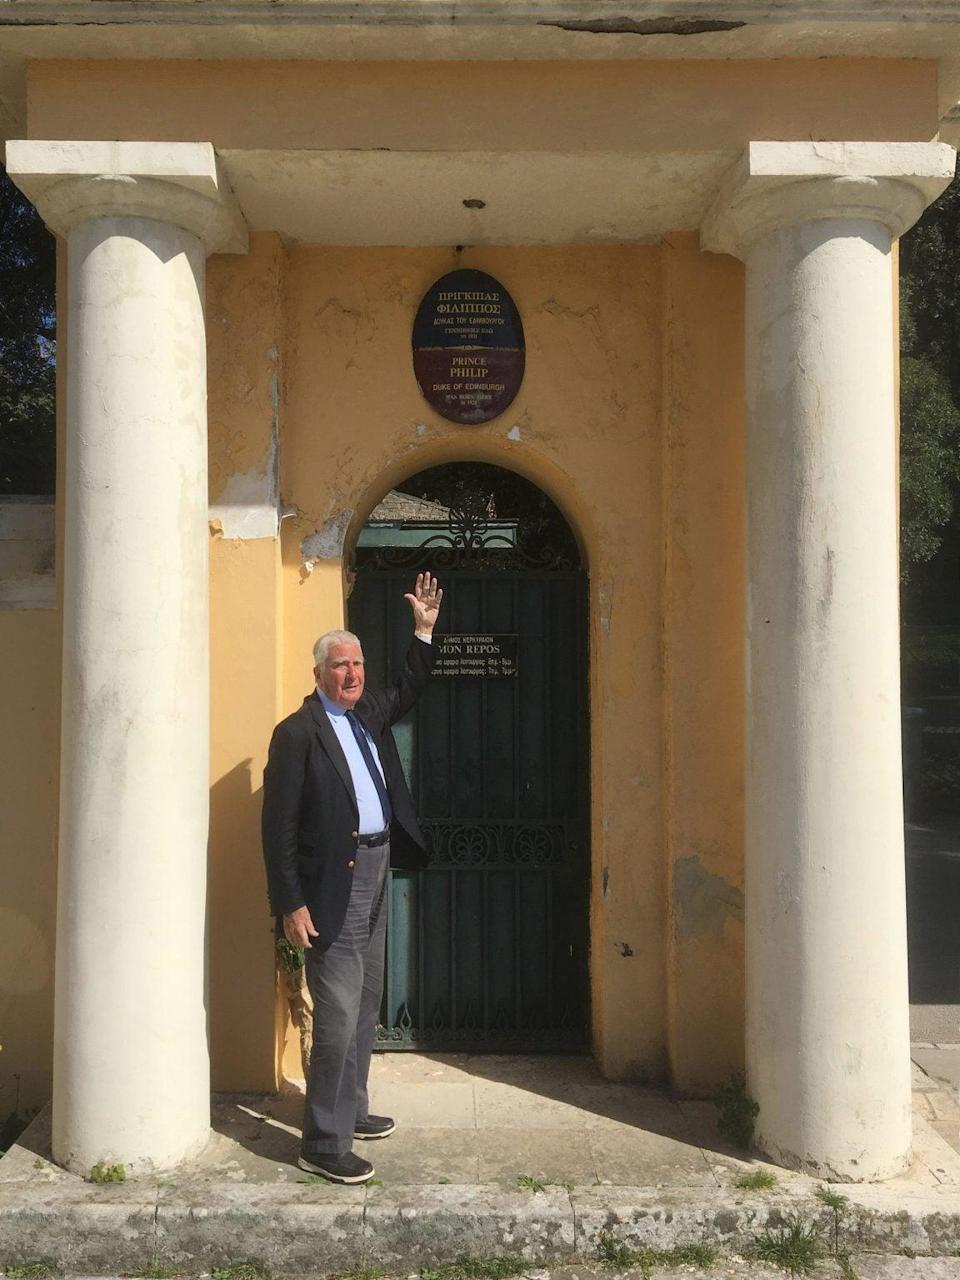 Count Spiro Flamburiari, chair of the Corfu Heritage Foundation, with the plaque dedicated to Prince Philip outside Mon ReposAlex Sakalis